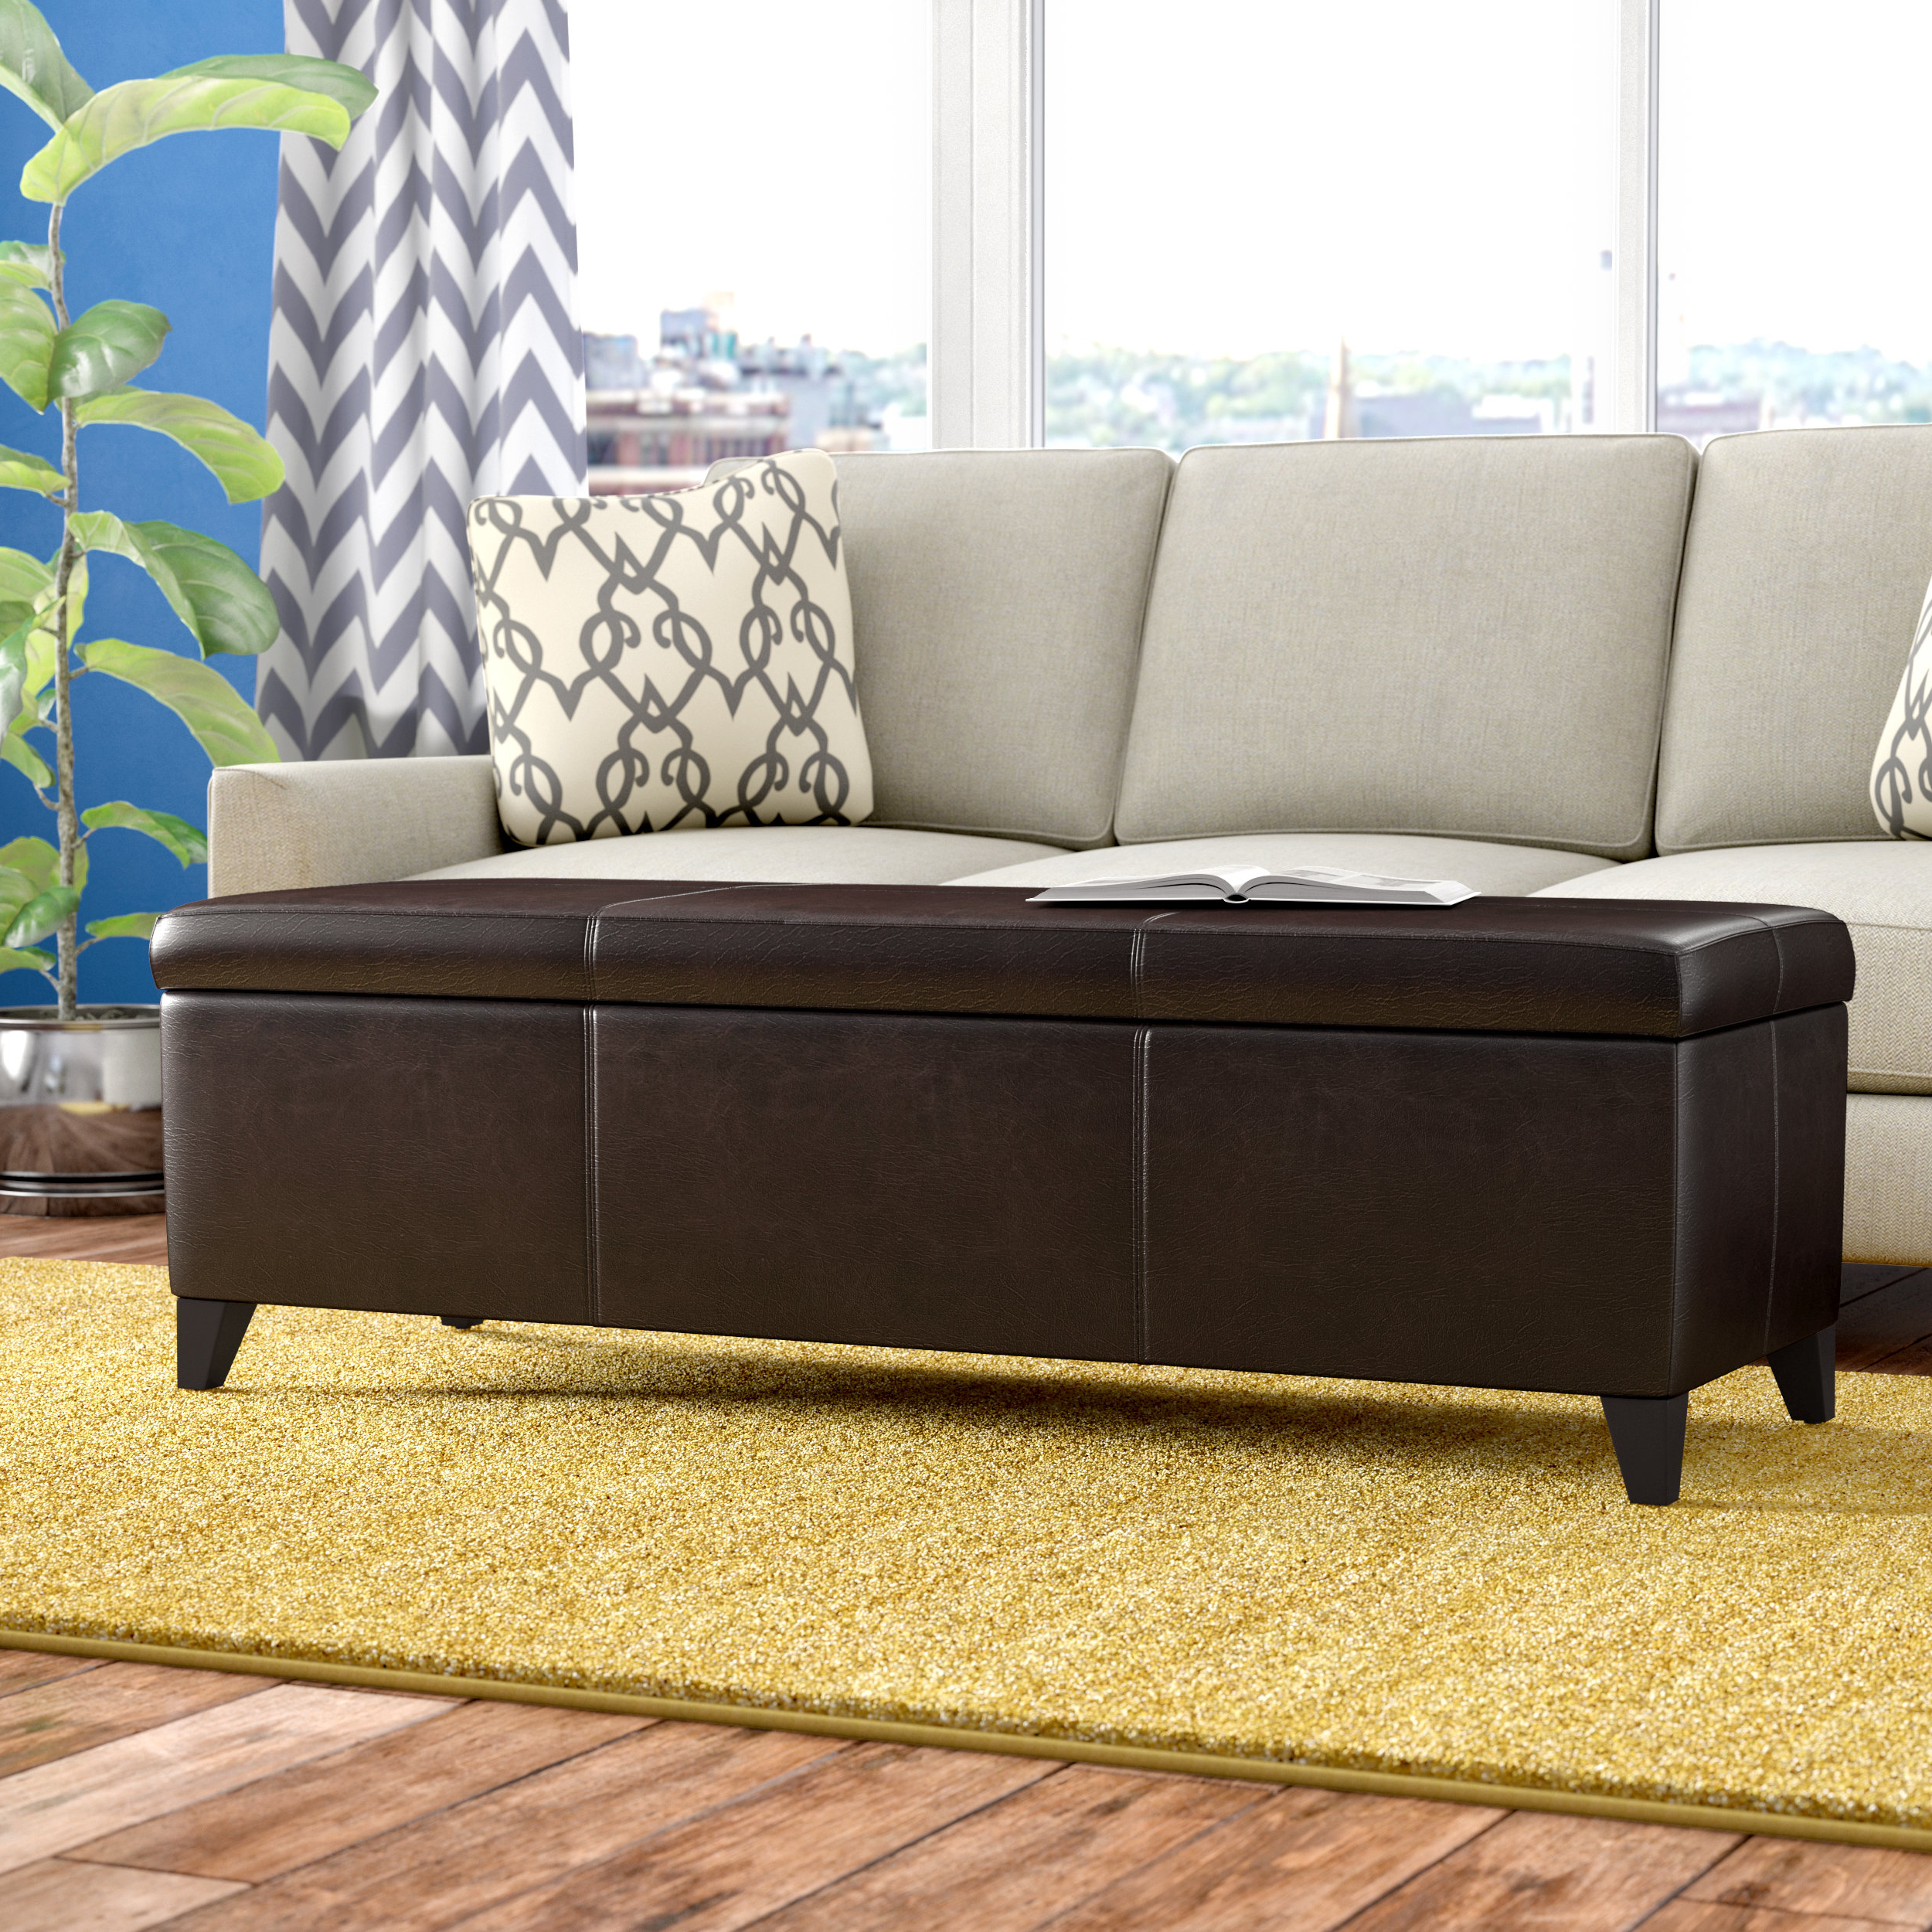 Mill Large Leather Coffee Tables With Favorite Andover Mills Denali Storage Ottoman & Reviews (View 15 of 20)